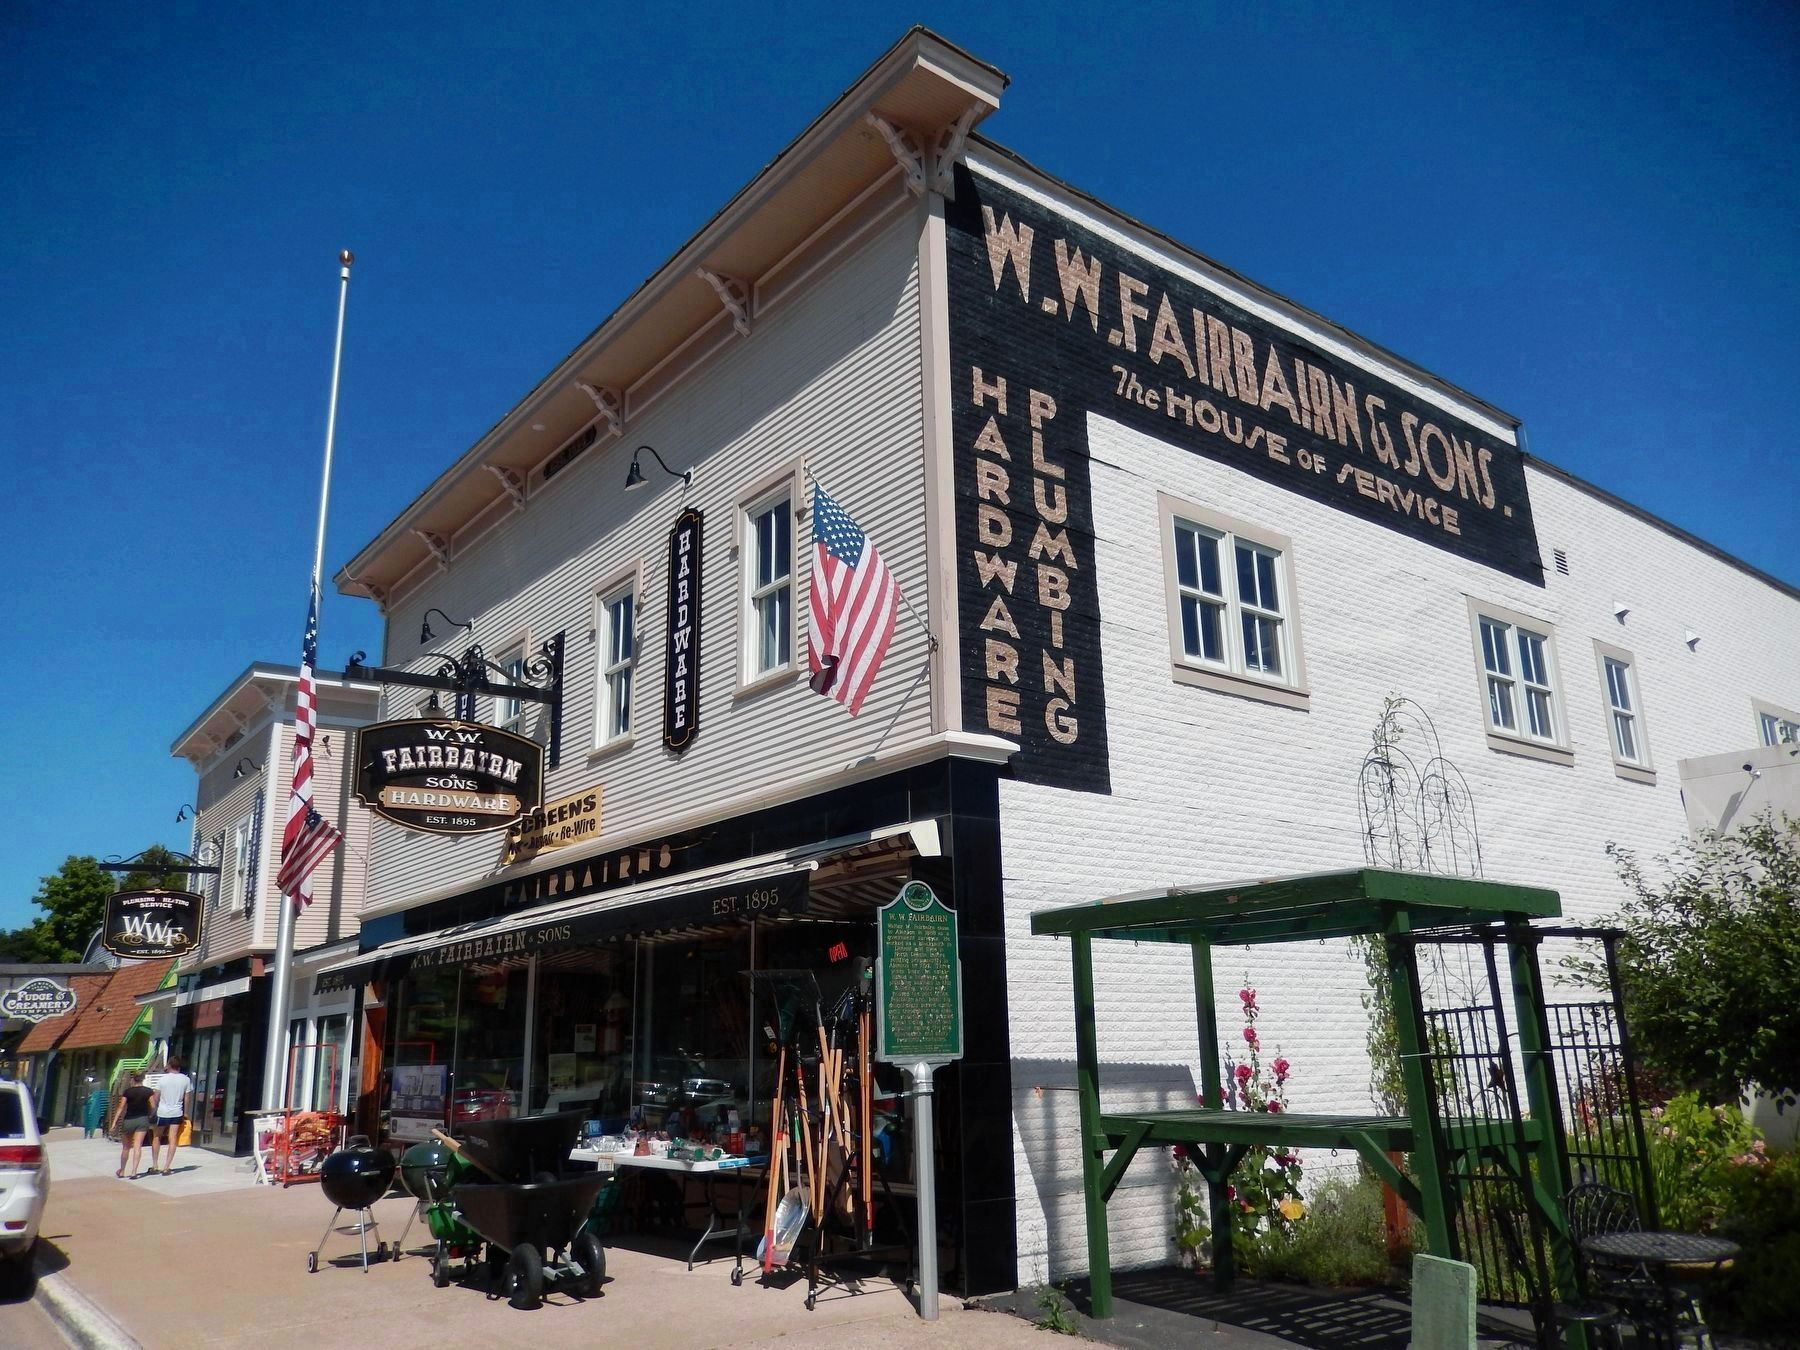 W. W. Fairbairn Hardware Store (<b><i>marker visible at front corner</b></i>) image. Click for full size.